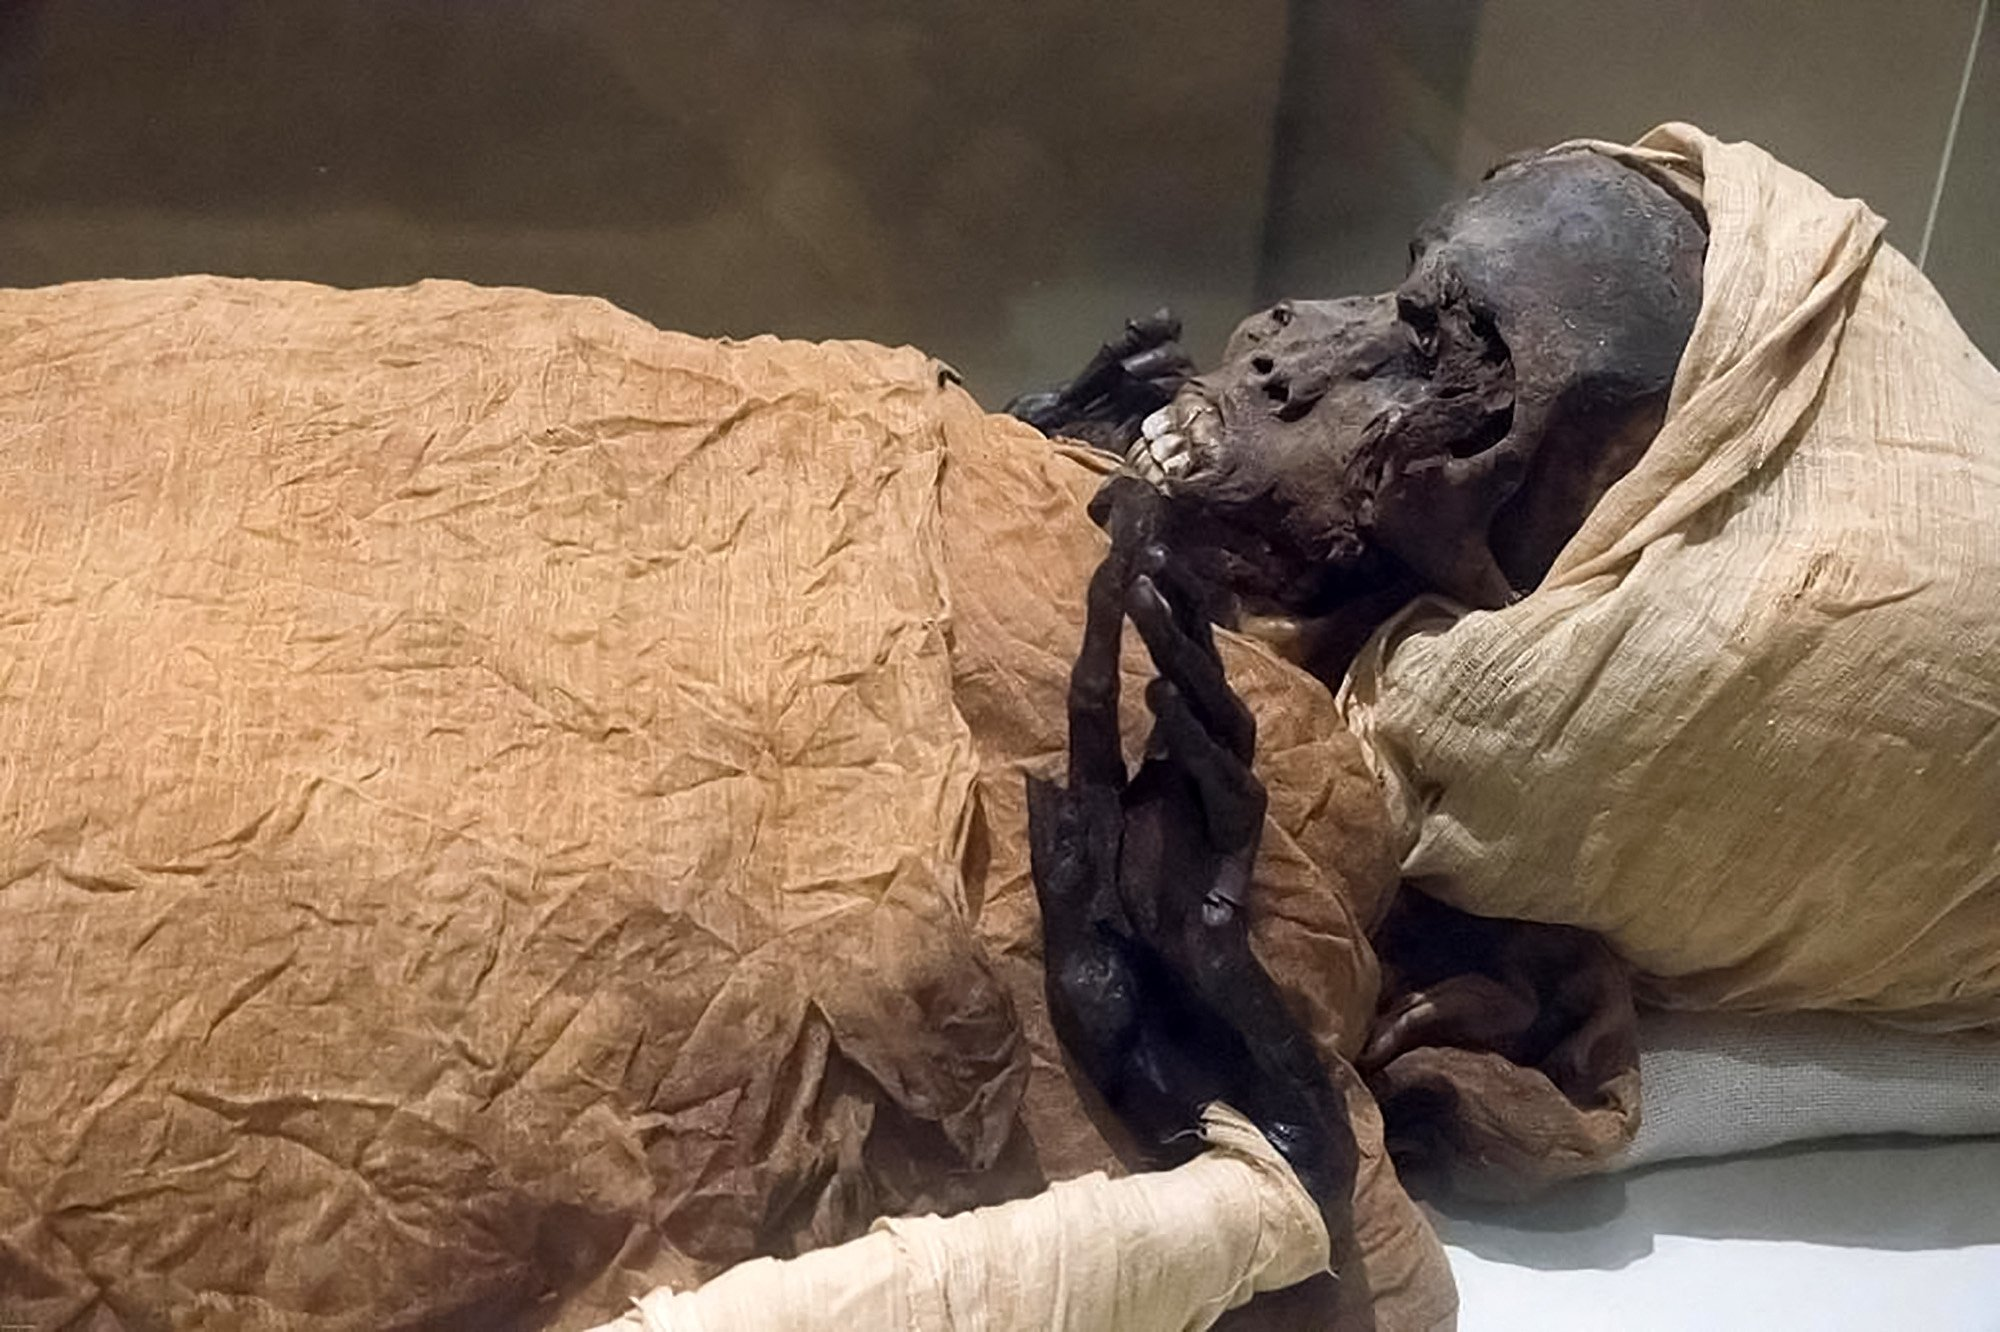 The mummy of ancient Egyptian King Seqenenre Tao II, 'the Brave,' who reigned over southern Egypt some 1,600 years B.C., in a photo handout released by the Egyptian Ministry of Tourism and Antiquities on Feb. 17, 2021. (Photo by - / Egyptian Ministry of Antiquities / AFP)